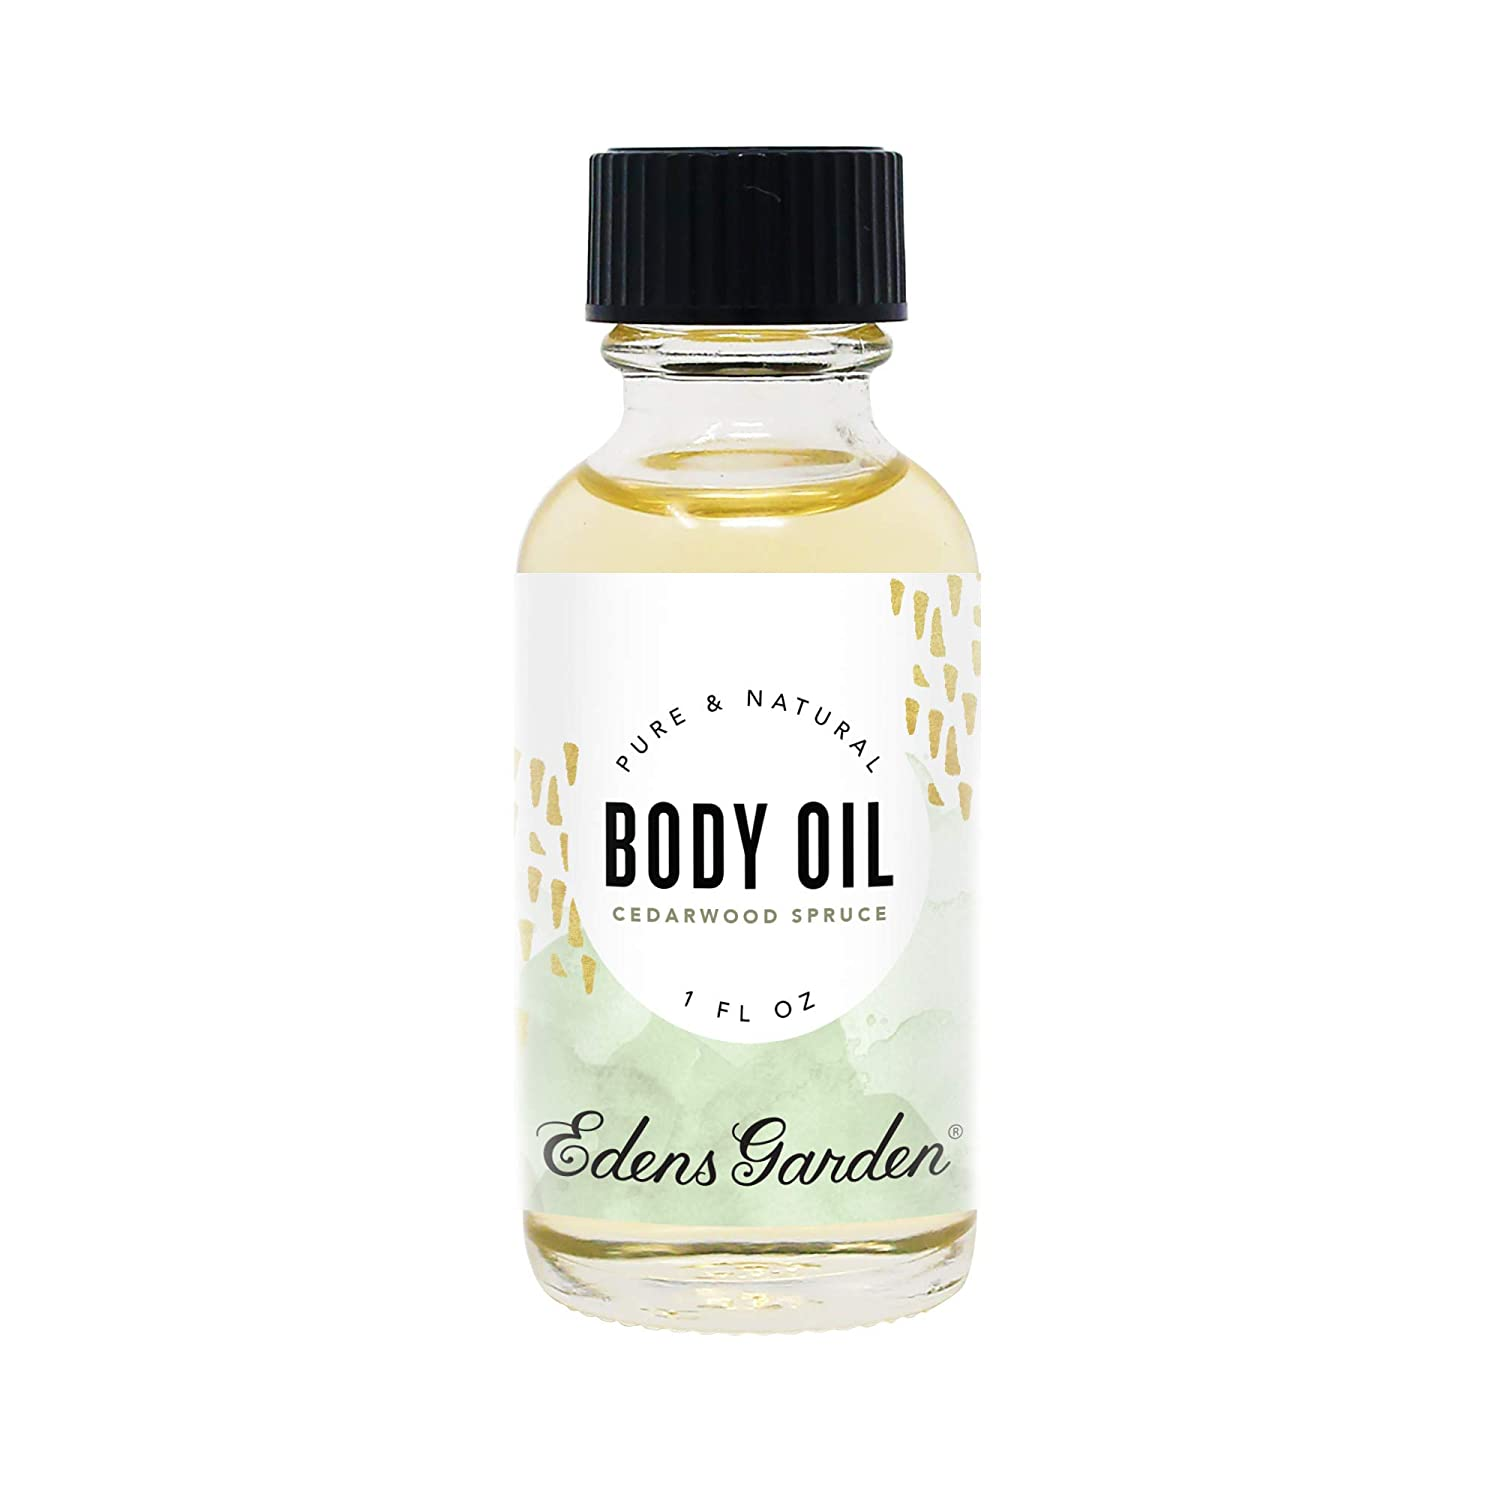 Edens Garden Cedarwood Spruce Aromatherapy Body Oil (Made With Pure Essential Oils & Vitamin E - Great For Massage & Daily Skin Care), 1 oz